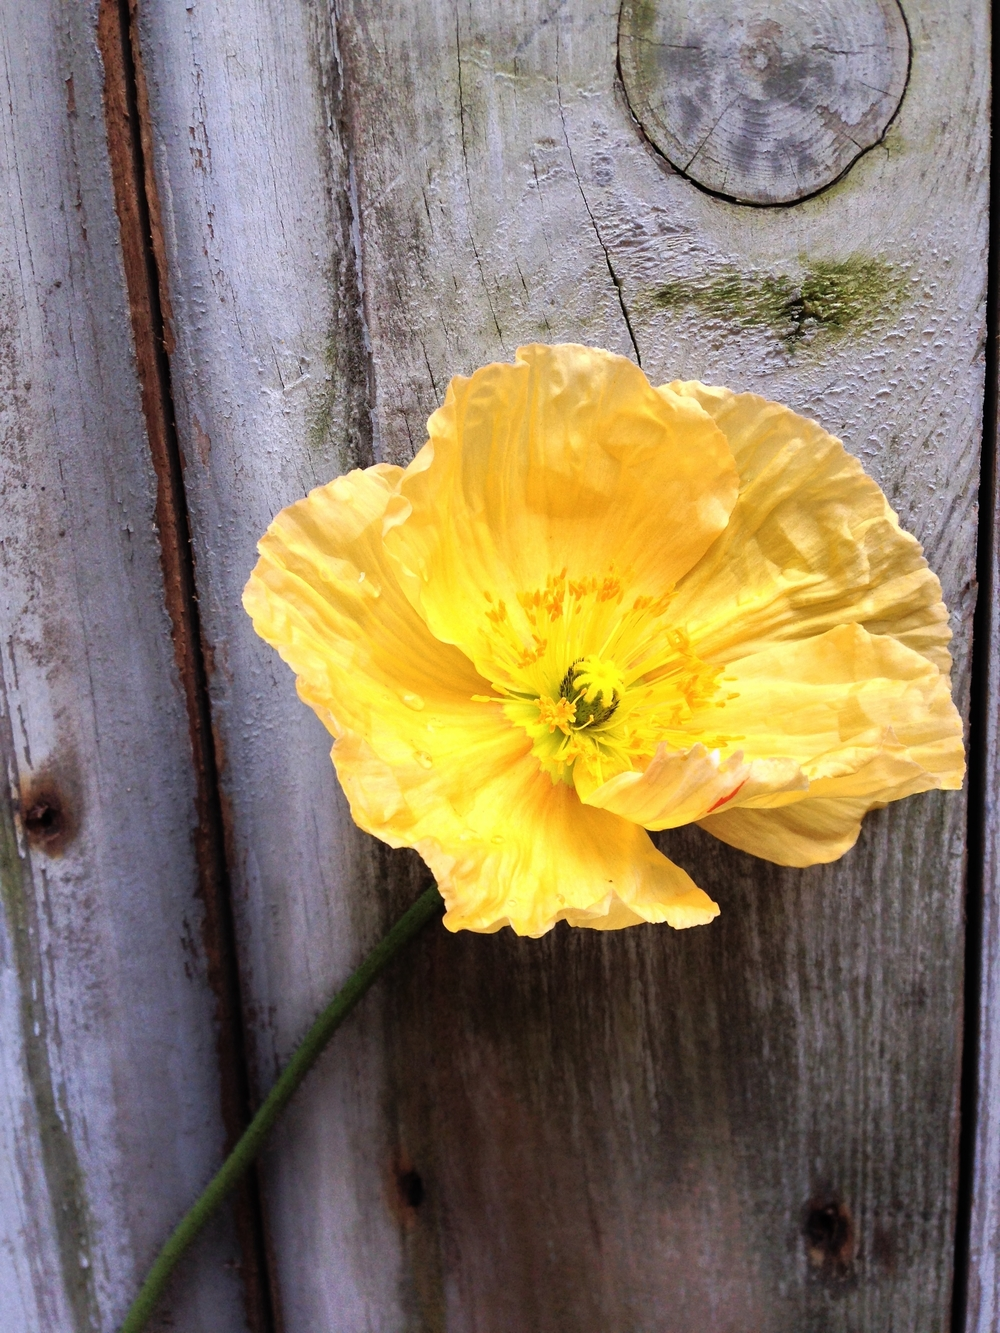 Icelandic poppy. So expressive in a bridal bouquet or floral arrangement. My favorite to work with.